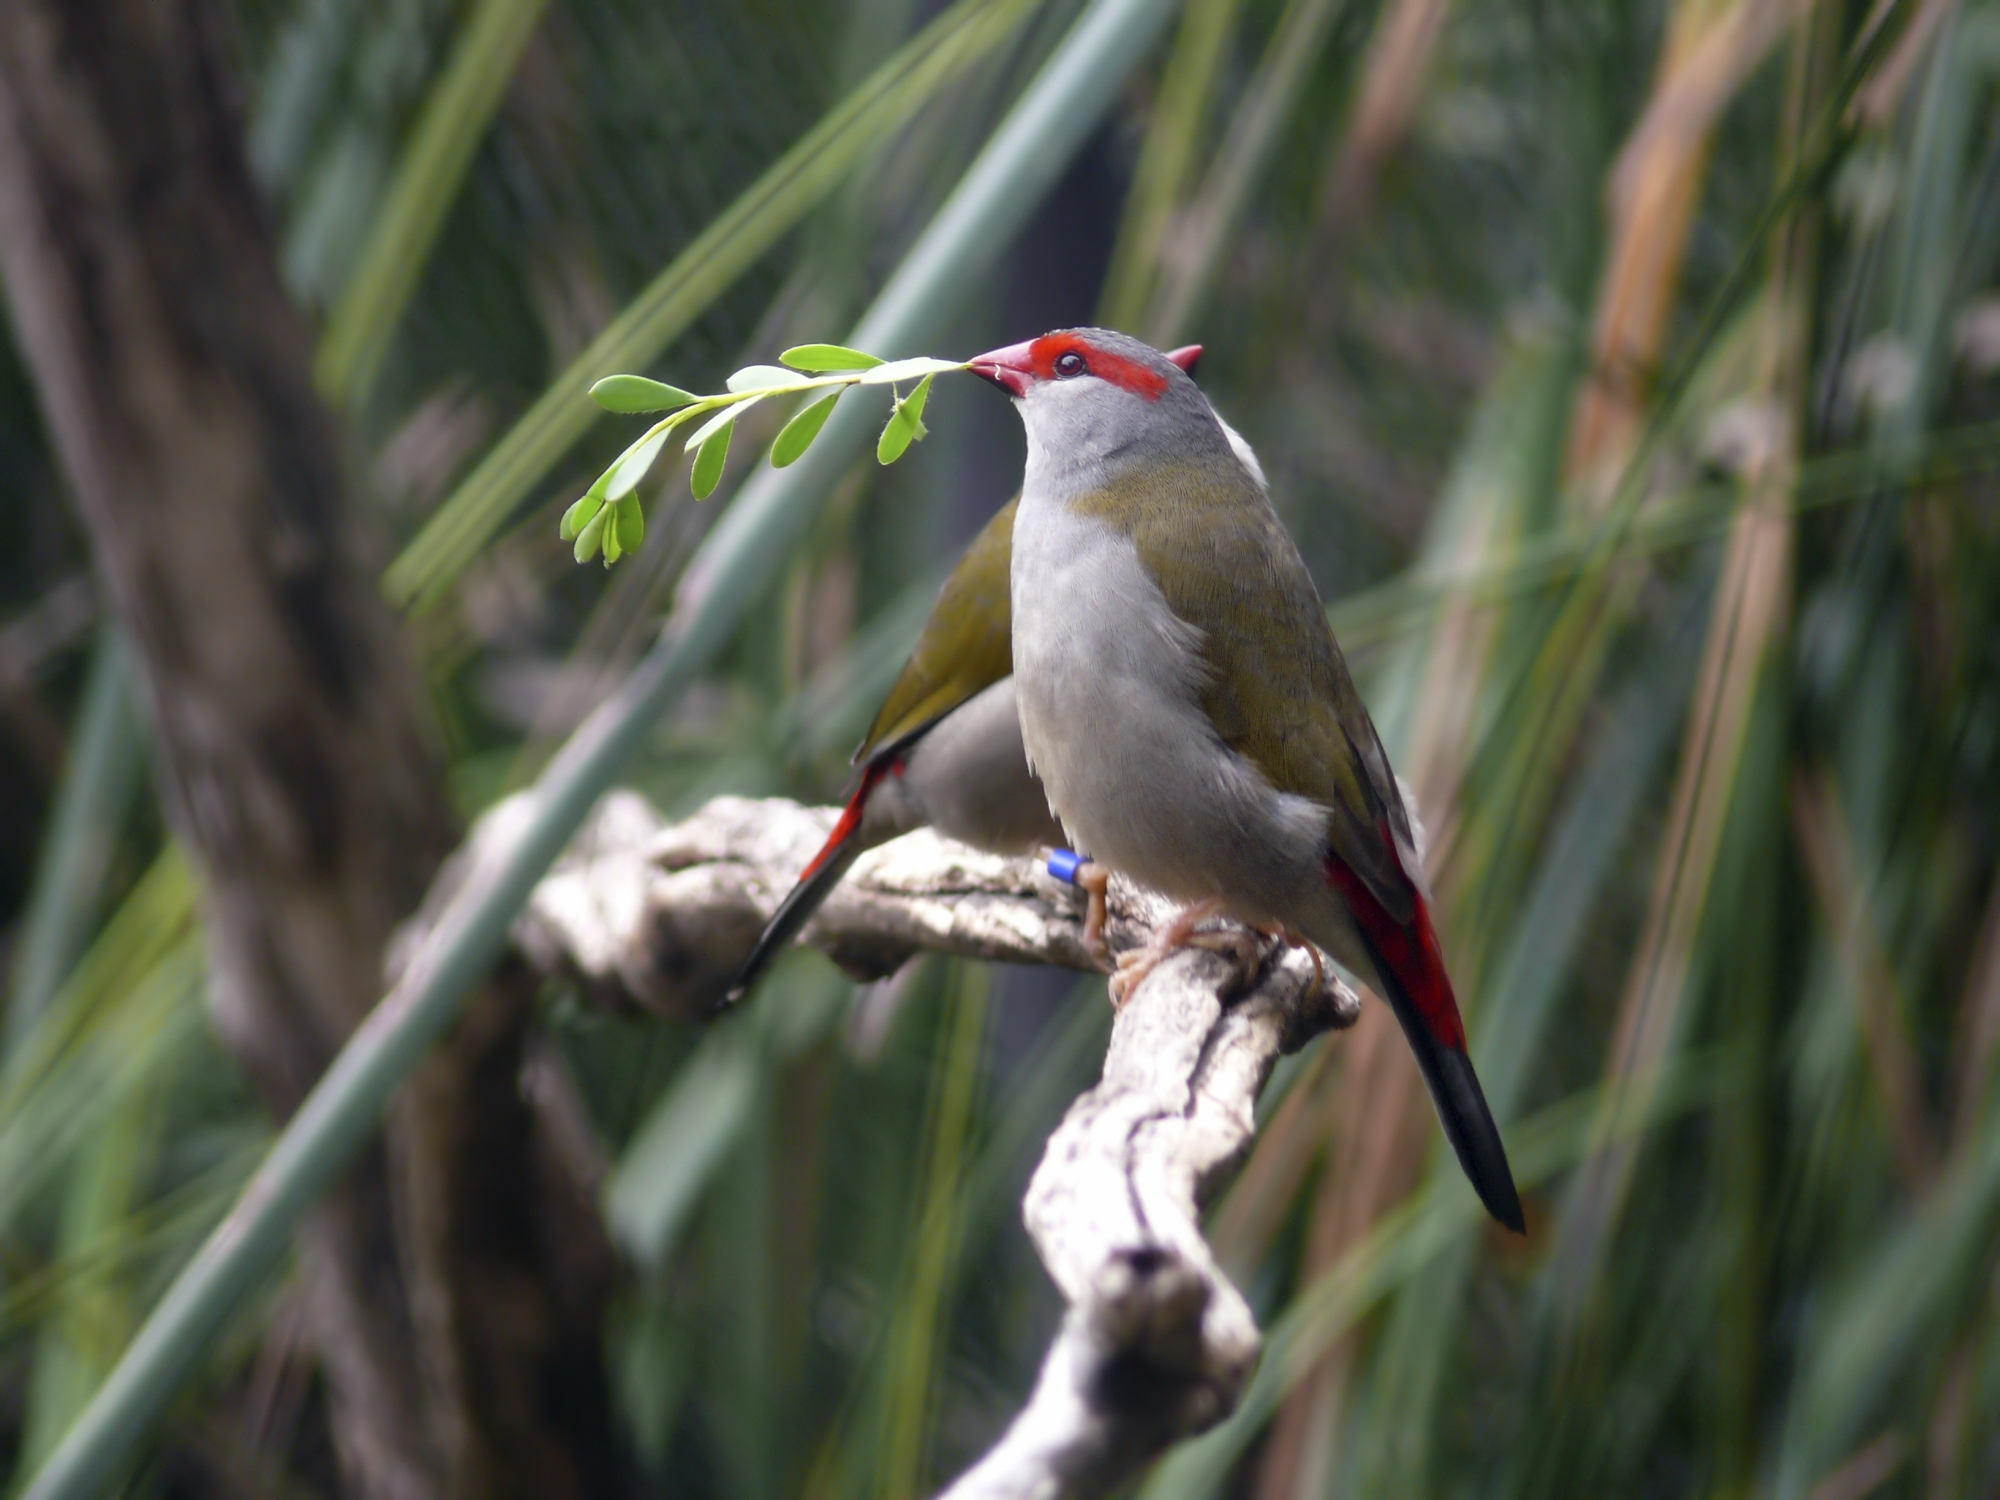 A red-browed finch.